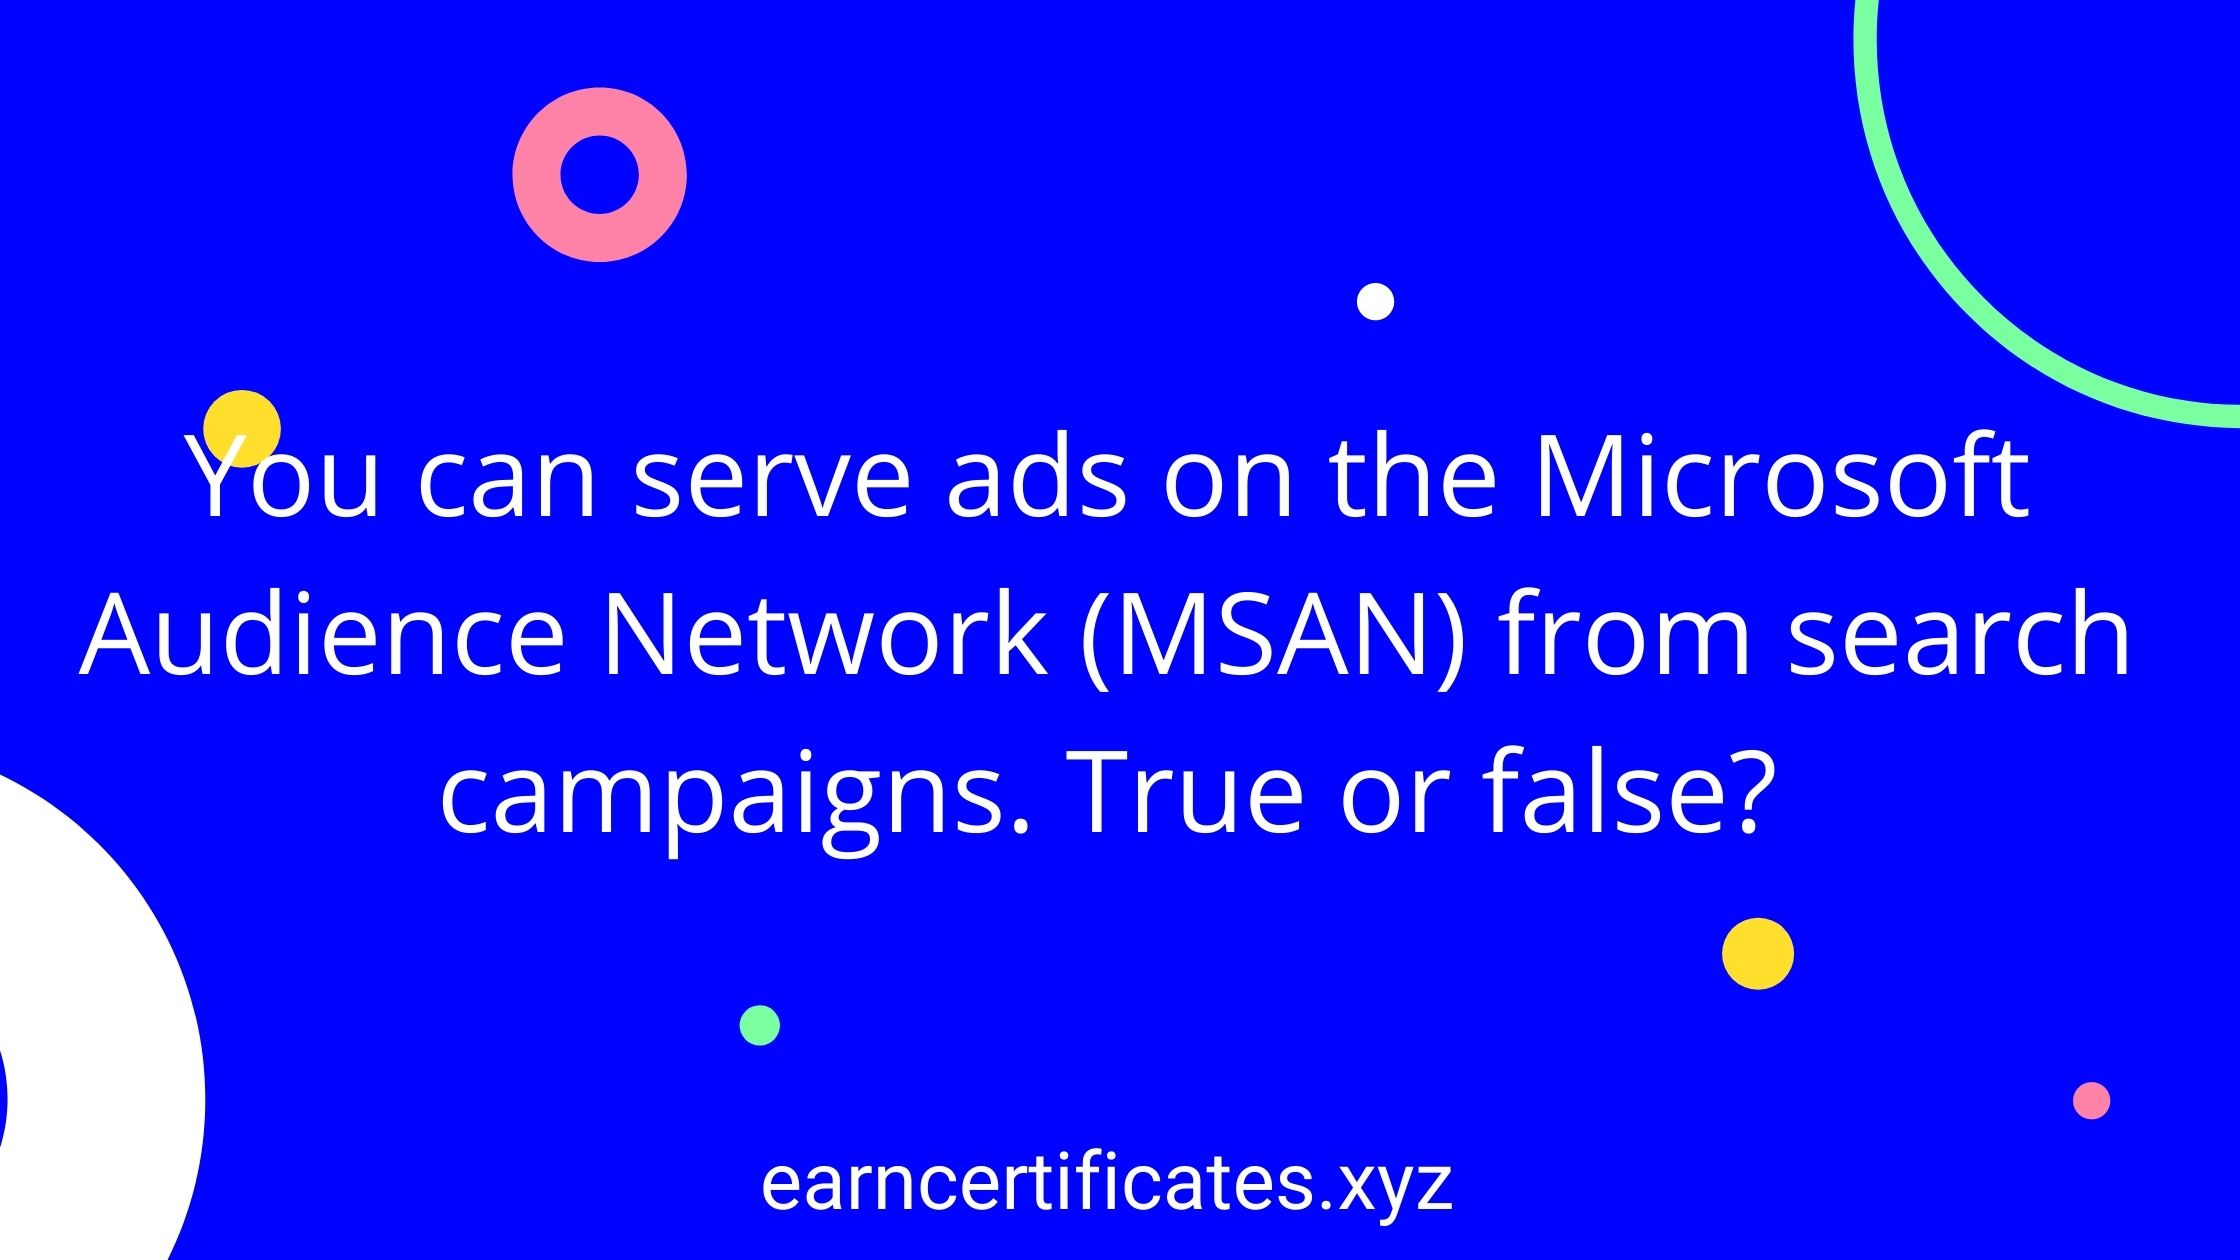 You can serve ads on the Microsoft Audience Network (MSAN) from search campaigns. True or false?